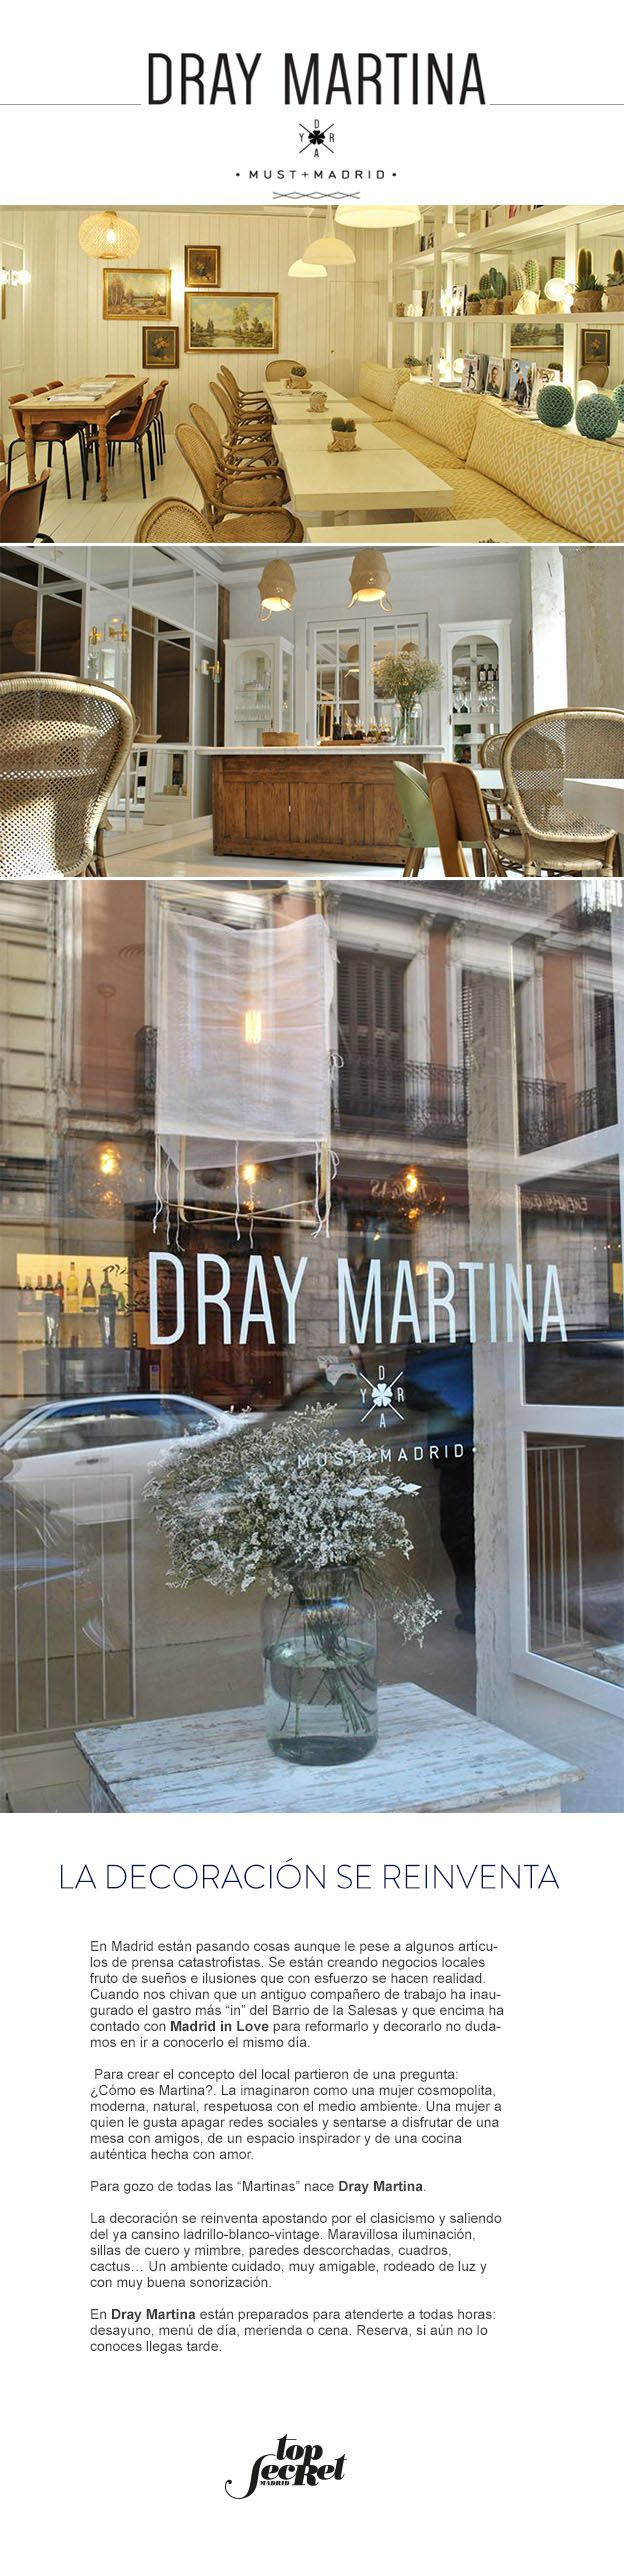 Dray martina madrid la decoraci n se reinventa topsecretmadrid cafeteria pinterest madrid - Decoracion madrid ...